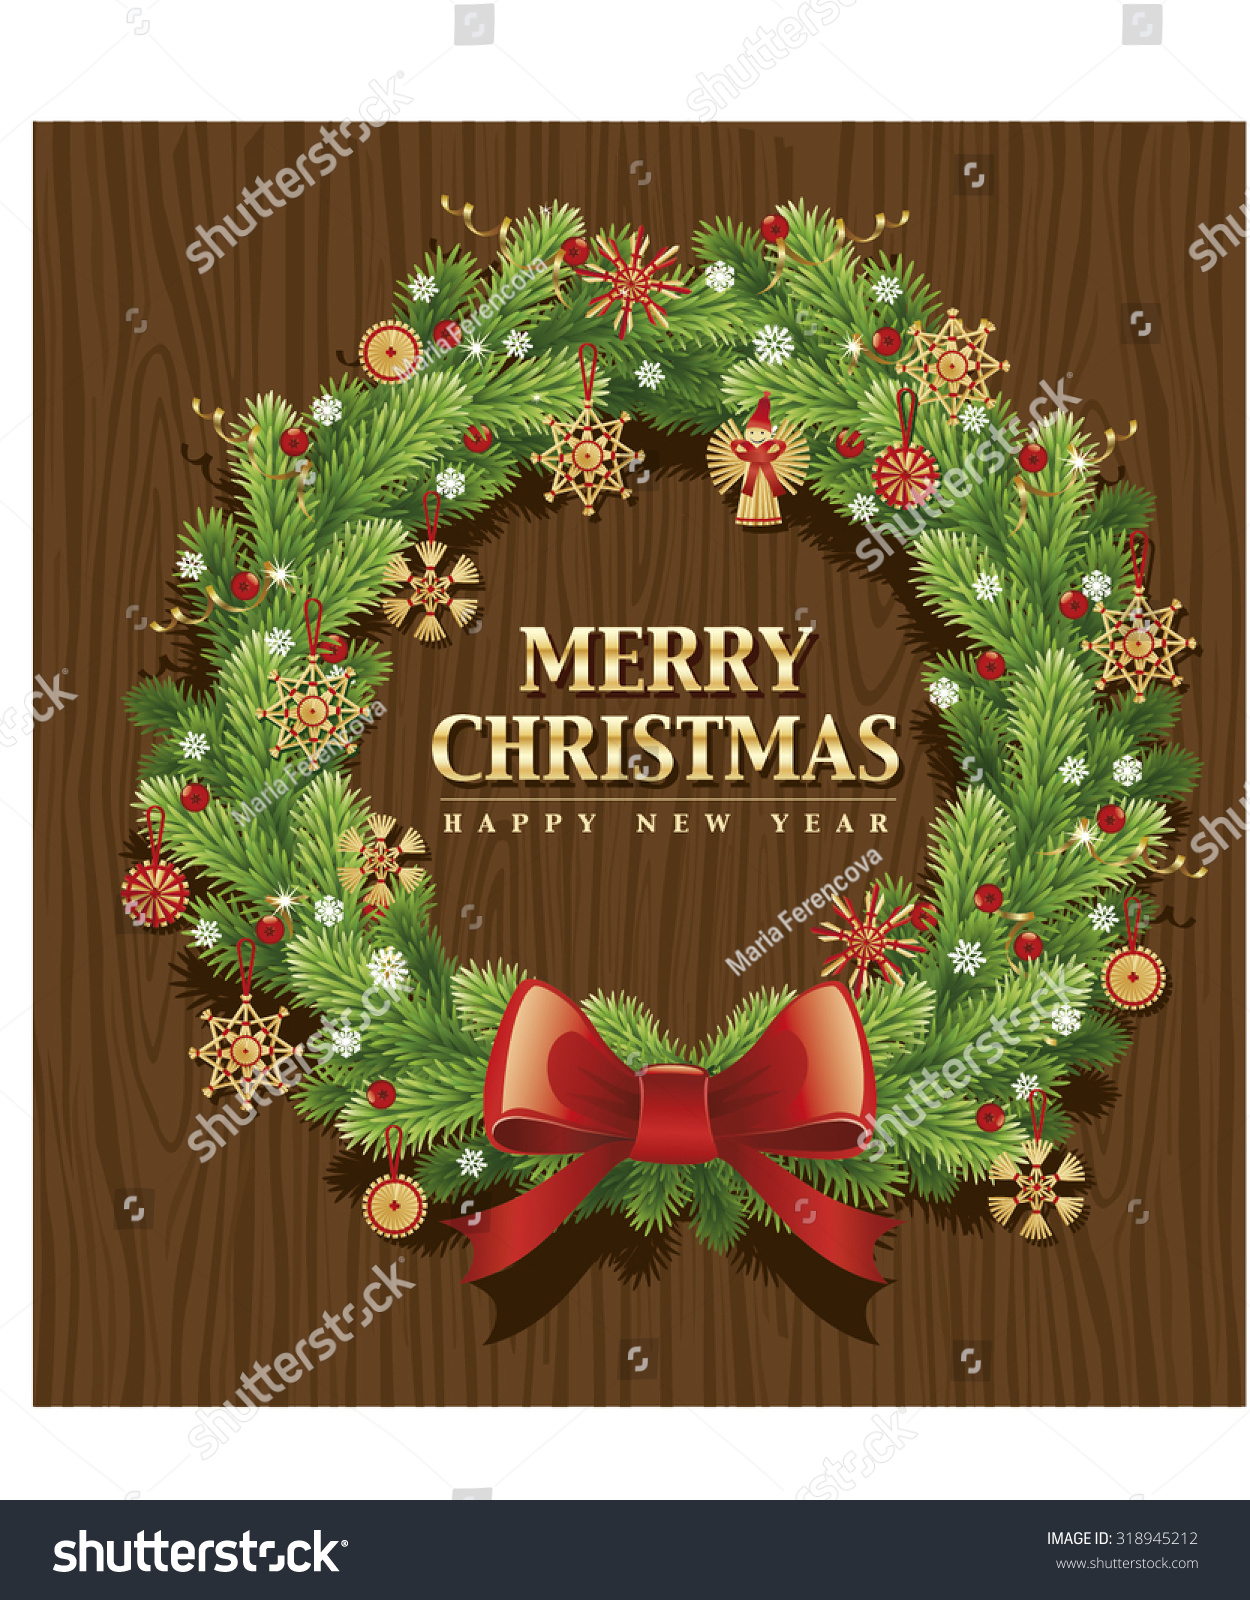 Why is holly a traditional christmas decoration - Merry Christmas Wreath Background With Traditional Straw Decorations